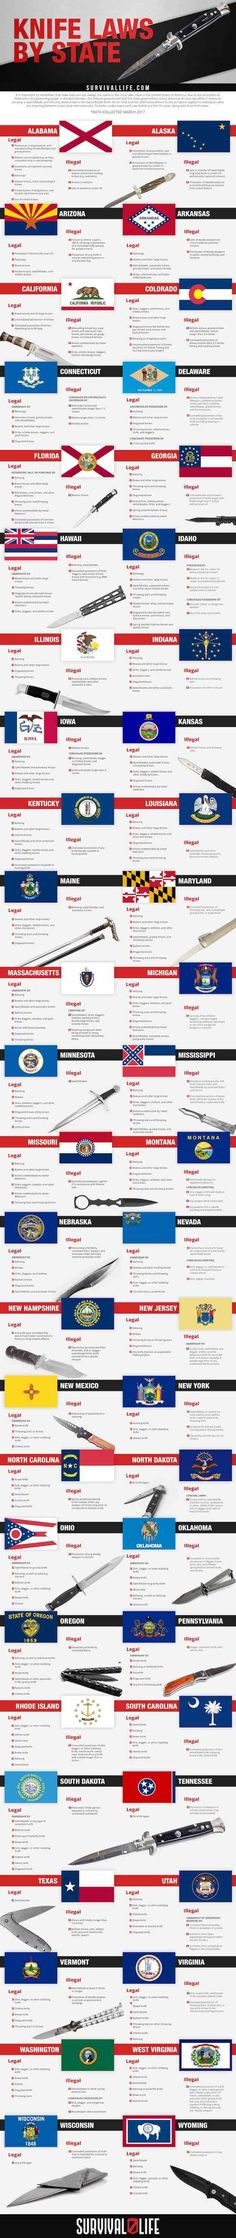 Knife laws by state